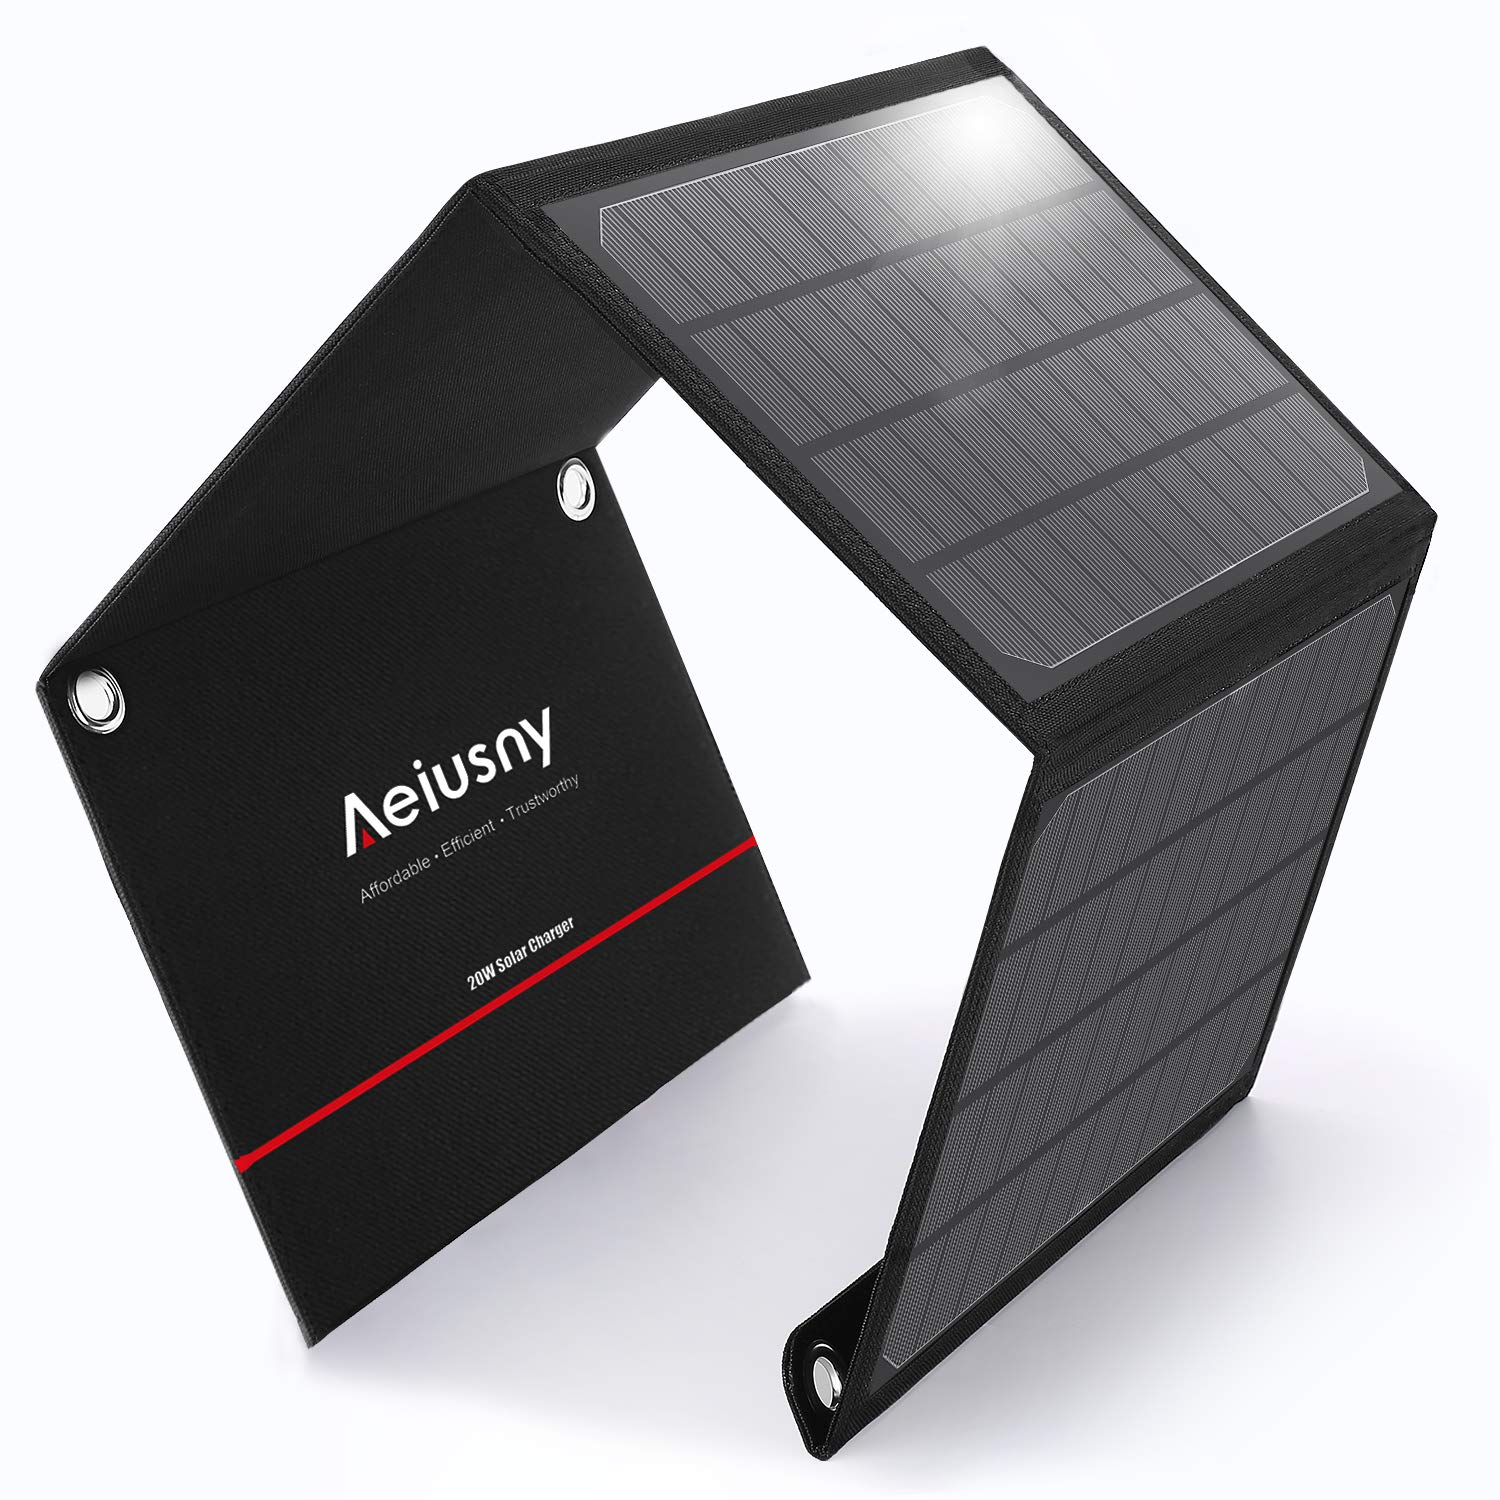 Aeiusny 20W Solar Charger Foldable Solar Panel with 3 USB Ports Waterproof Camping Travel Compatible for Battery Power Bank, iPhone Xs/XR/X/8P/8/7P/7, iPad, Galaxy S9 S8, Nexus, LG, Any 5V USB Devices by Aeiusny